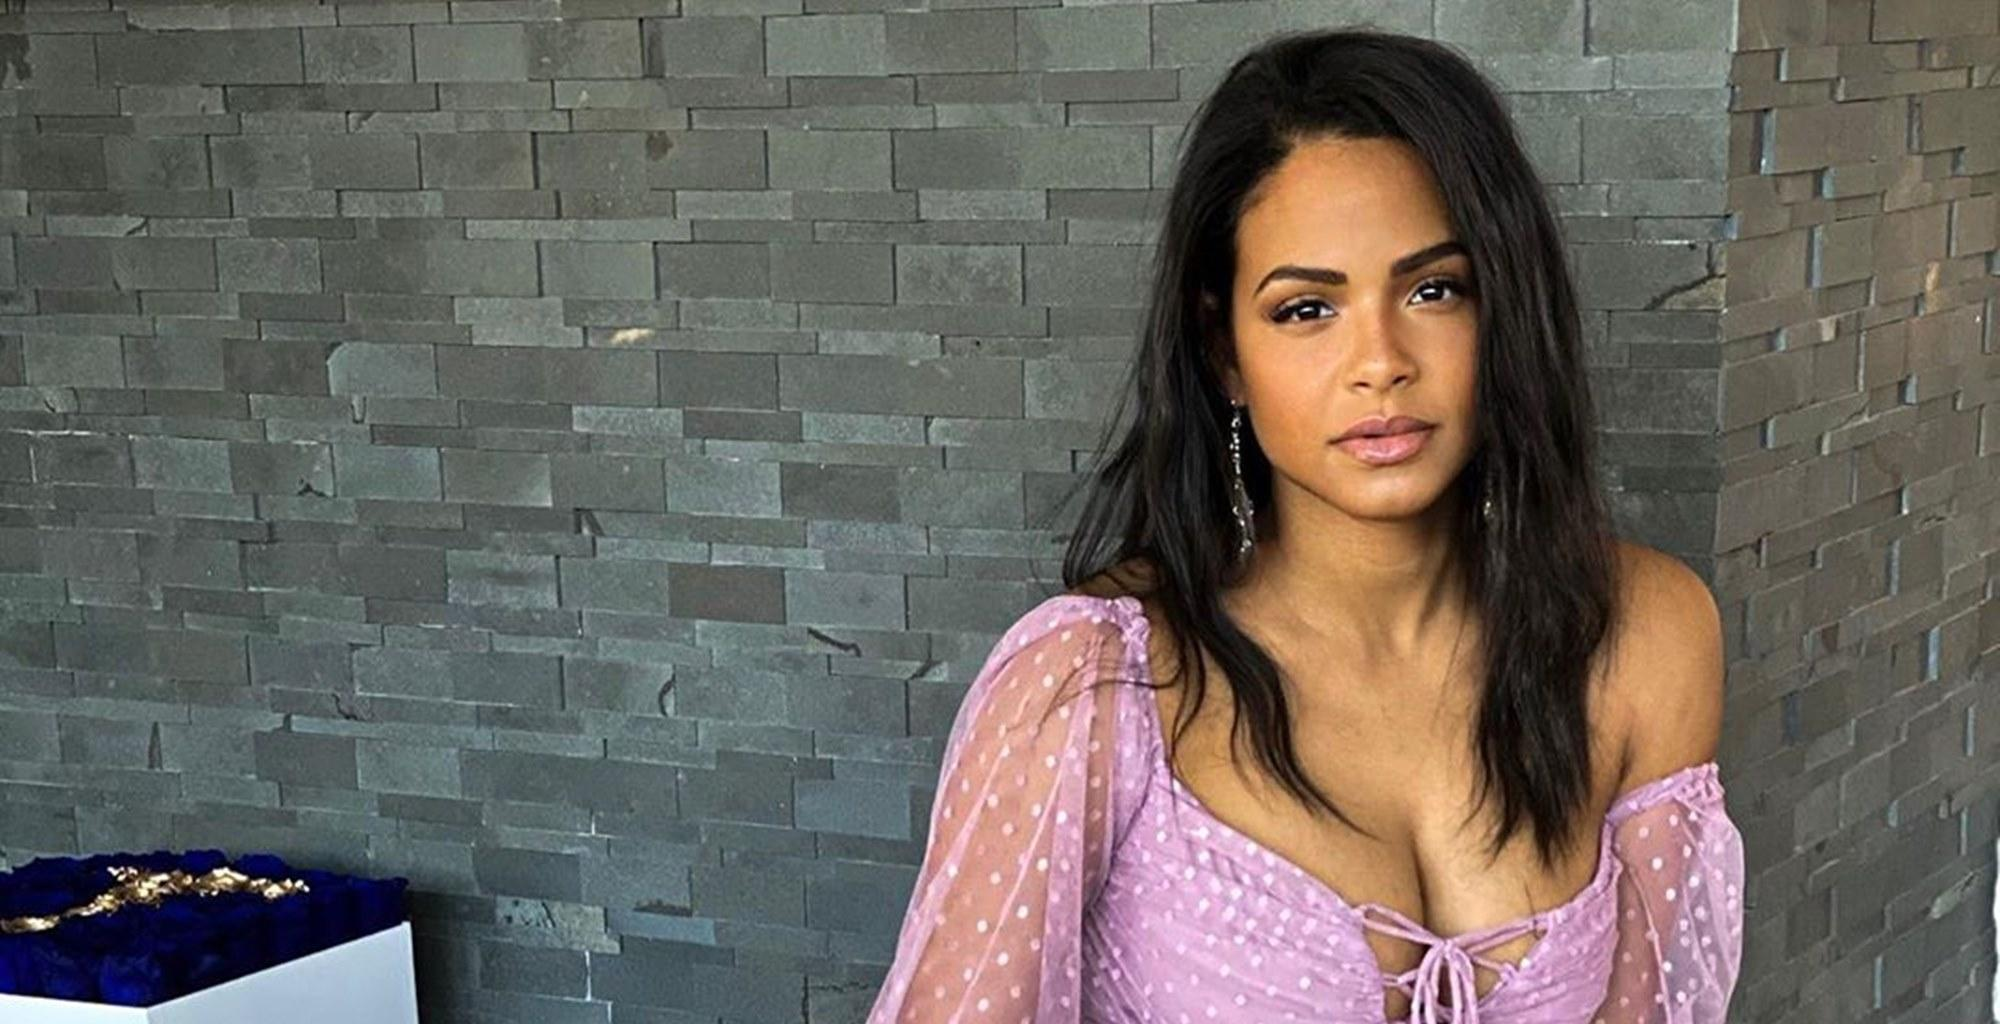 Christina Milian Looks Better Than Ever In New Stunning Photos After Giving Birth -- Matt Pokora's Girlfriend Has An Honest Conversation About Her Post-Baby Body And Fans Call Her A Role Model